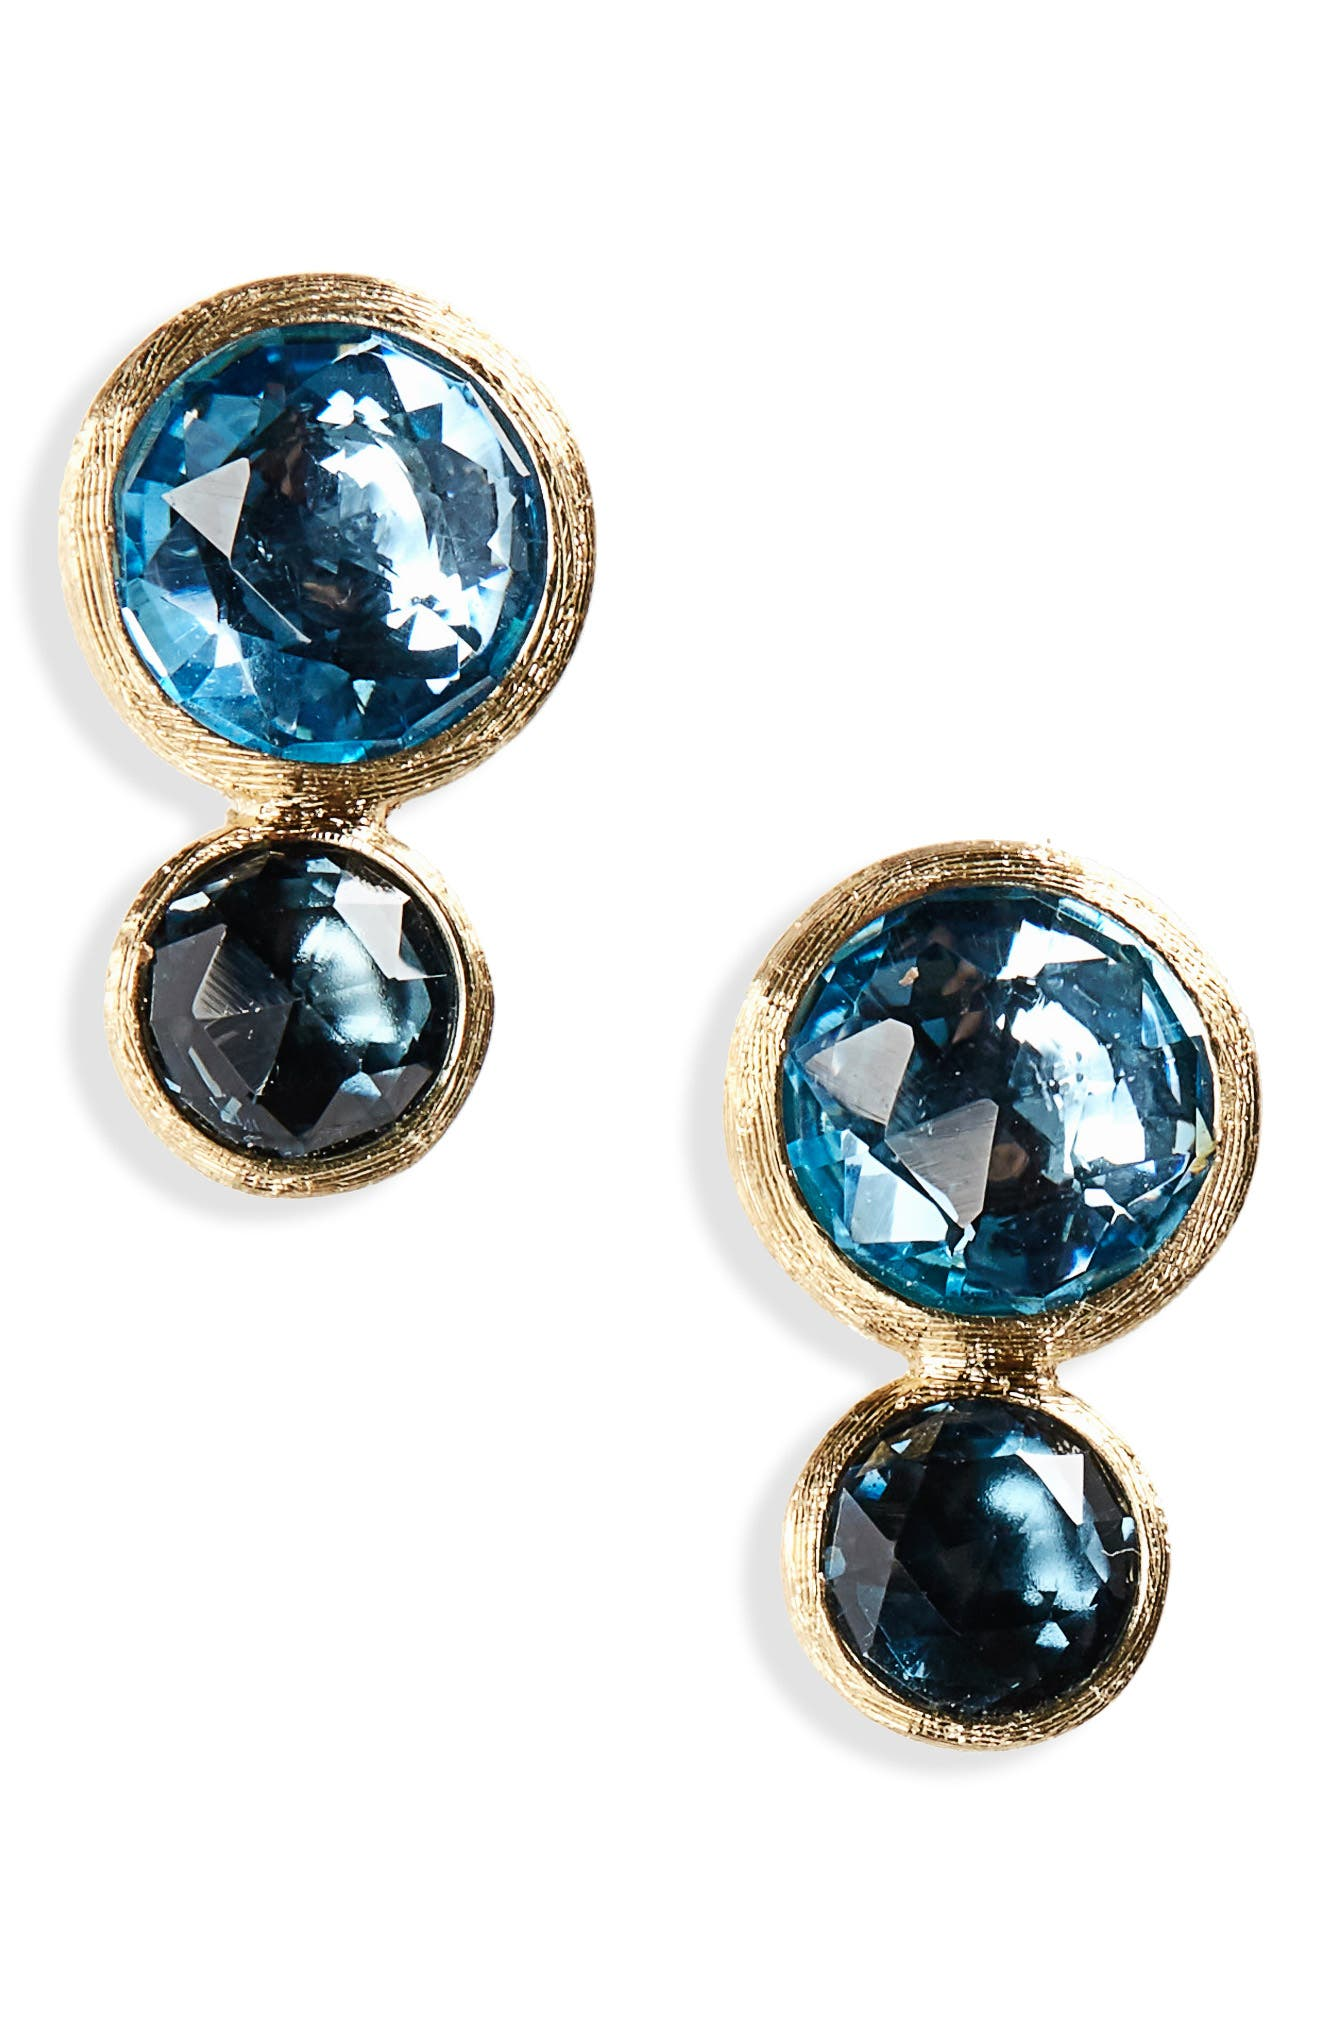 Jaipur 2-Stone Blue Topaz Stud Earrings,                             Main thumbnail 1, color,                             Yellow Gold London/ Swiss Blue